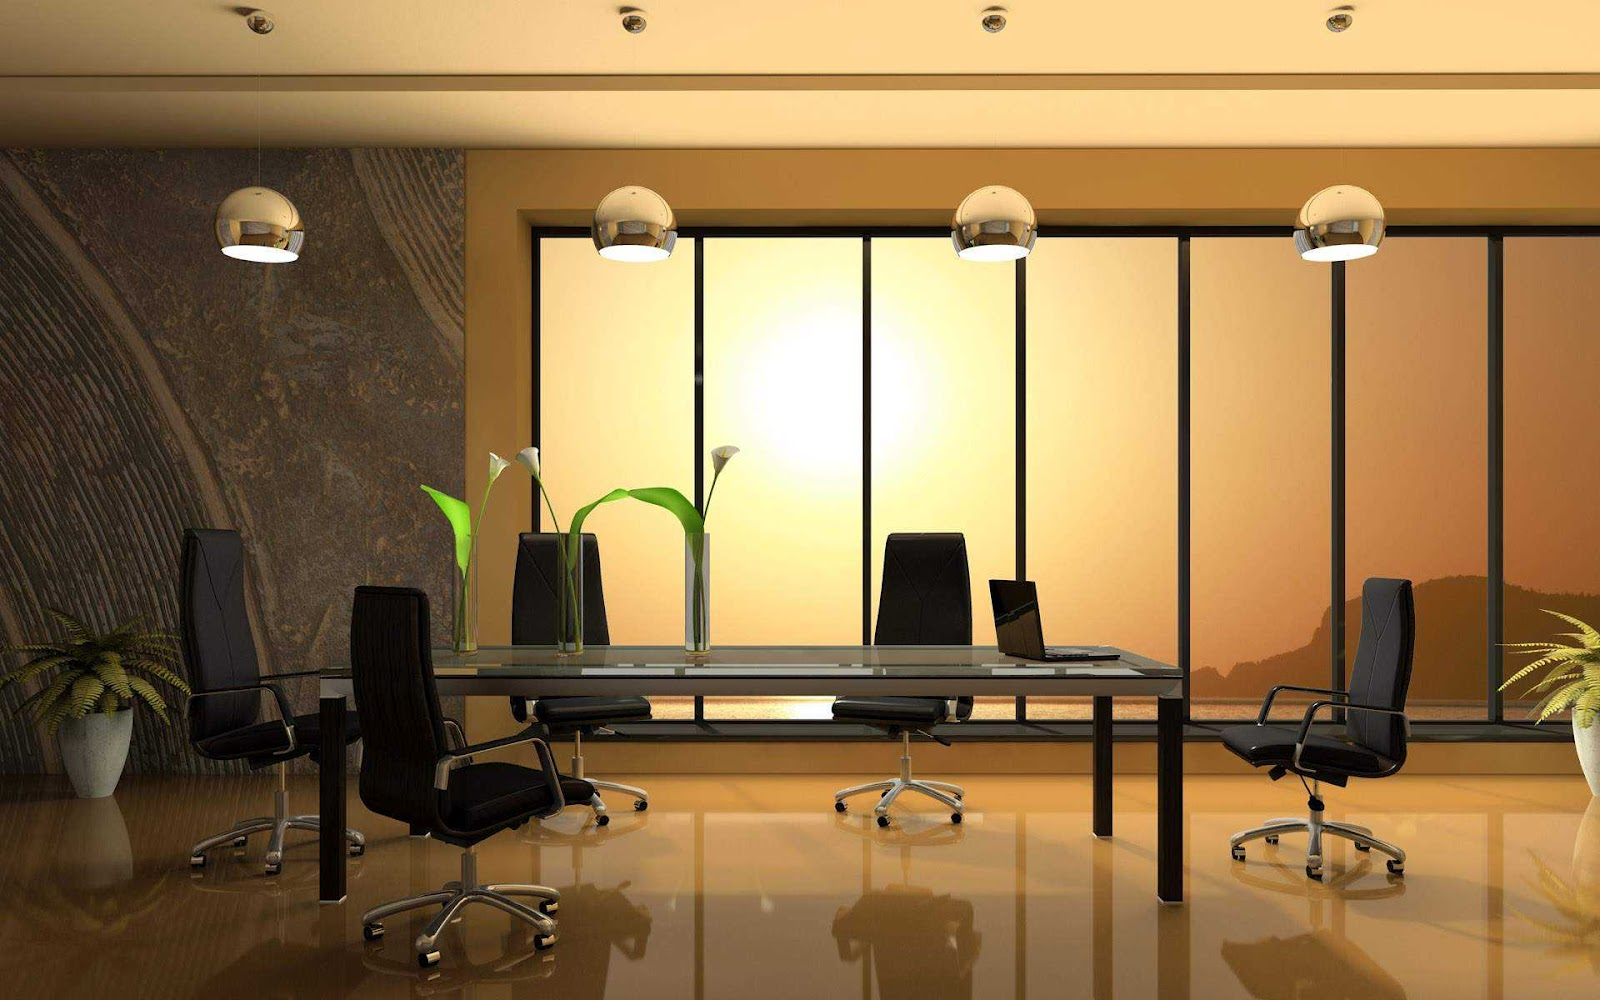 Luxury office office furniture design modern home office modern office furniture luxury office for Home office interior design ideas